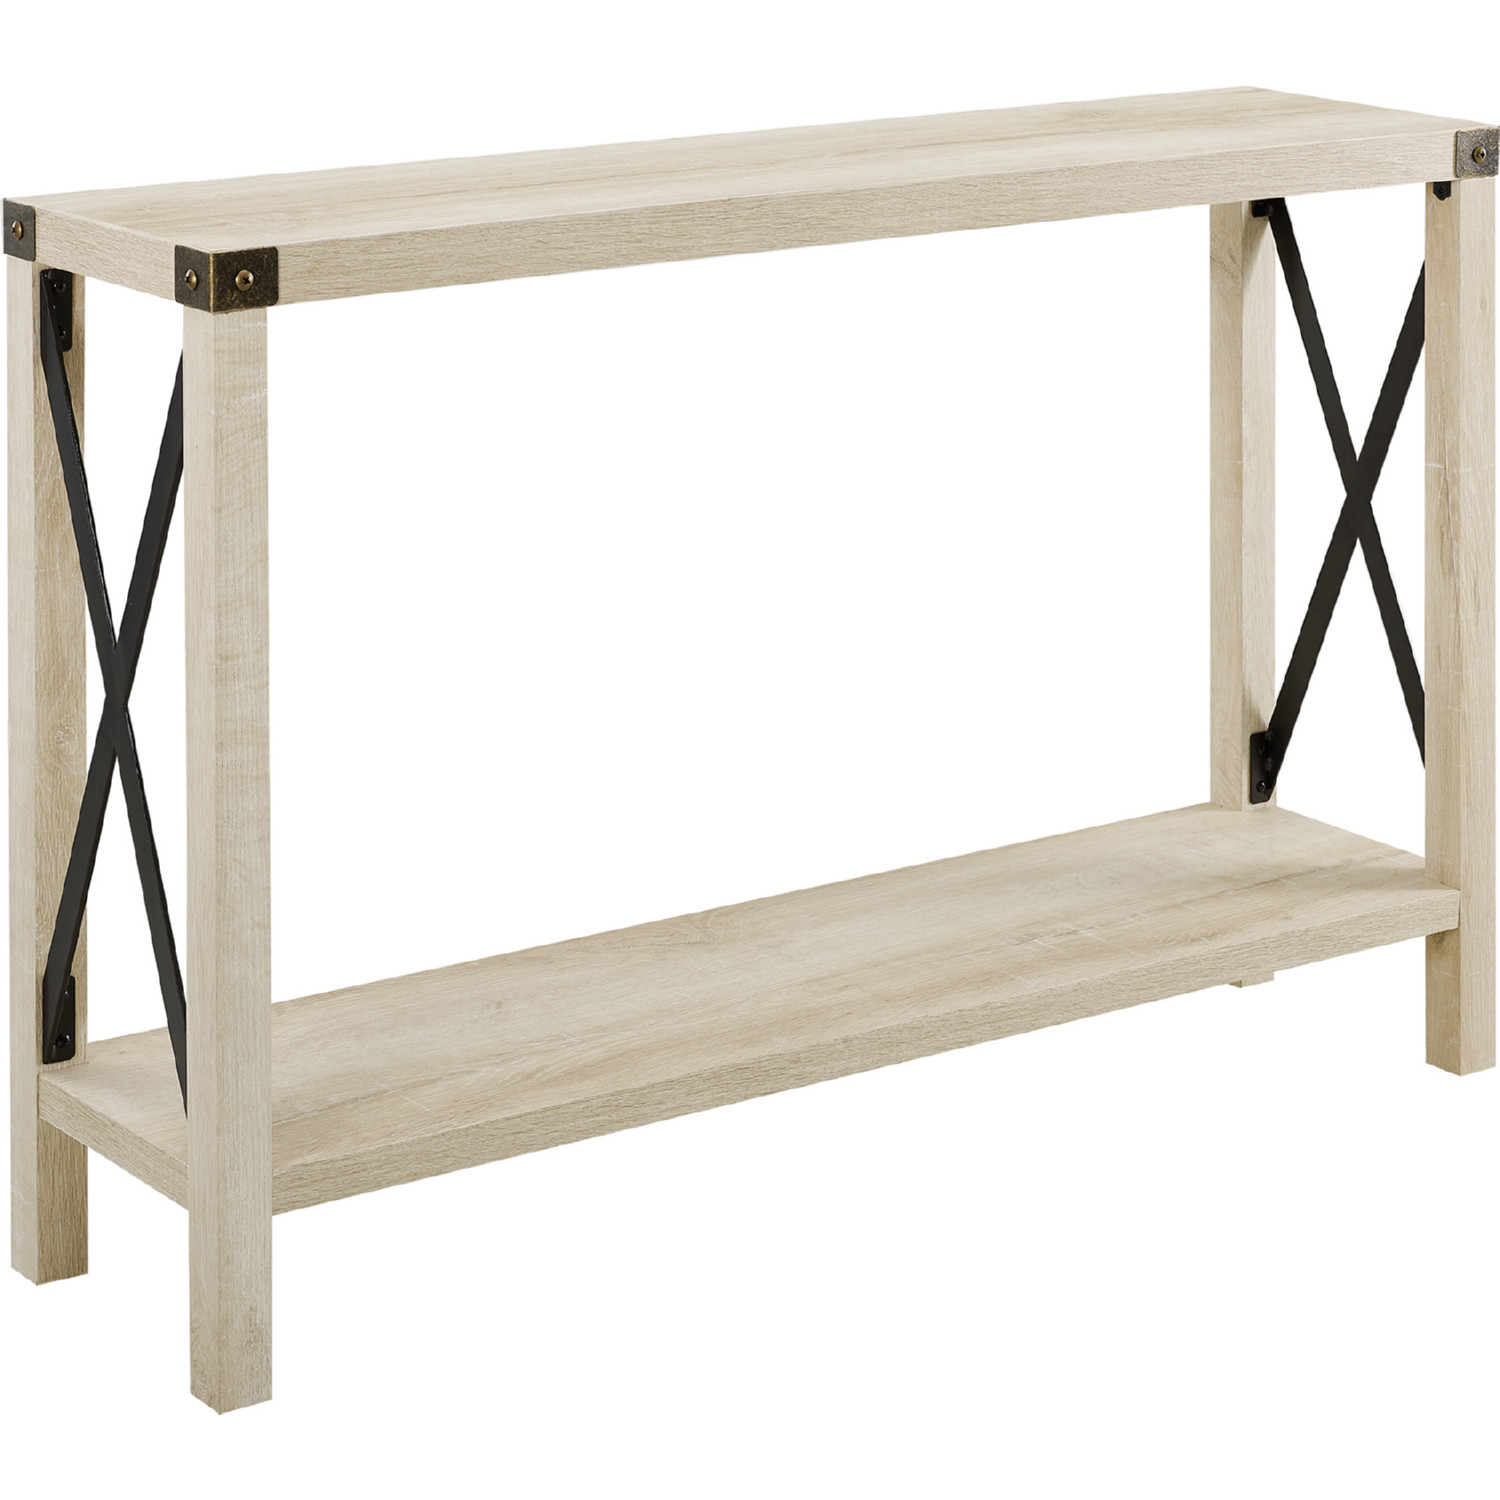 Picture of: Walker Edison Af46mxetwo 46 Rustic Farmhouse Entryway Console Table In White Oak